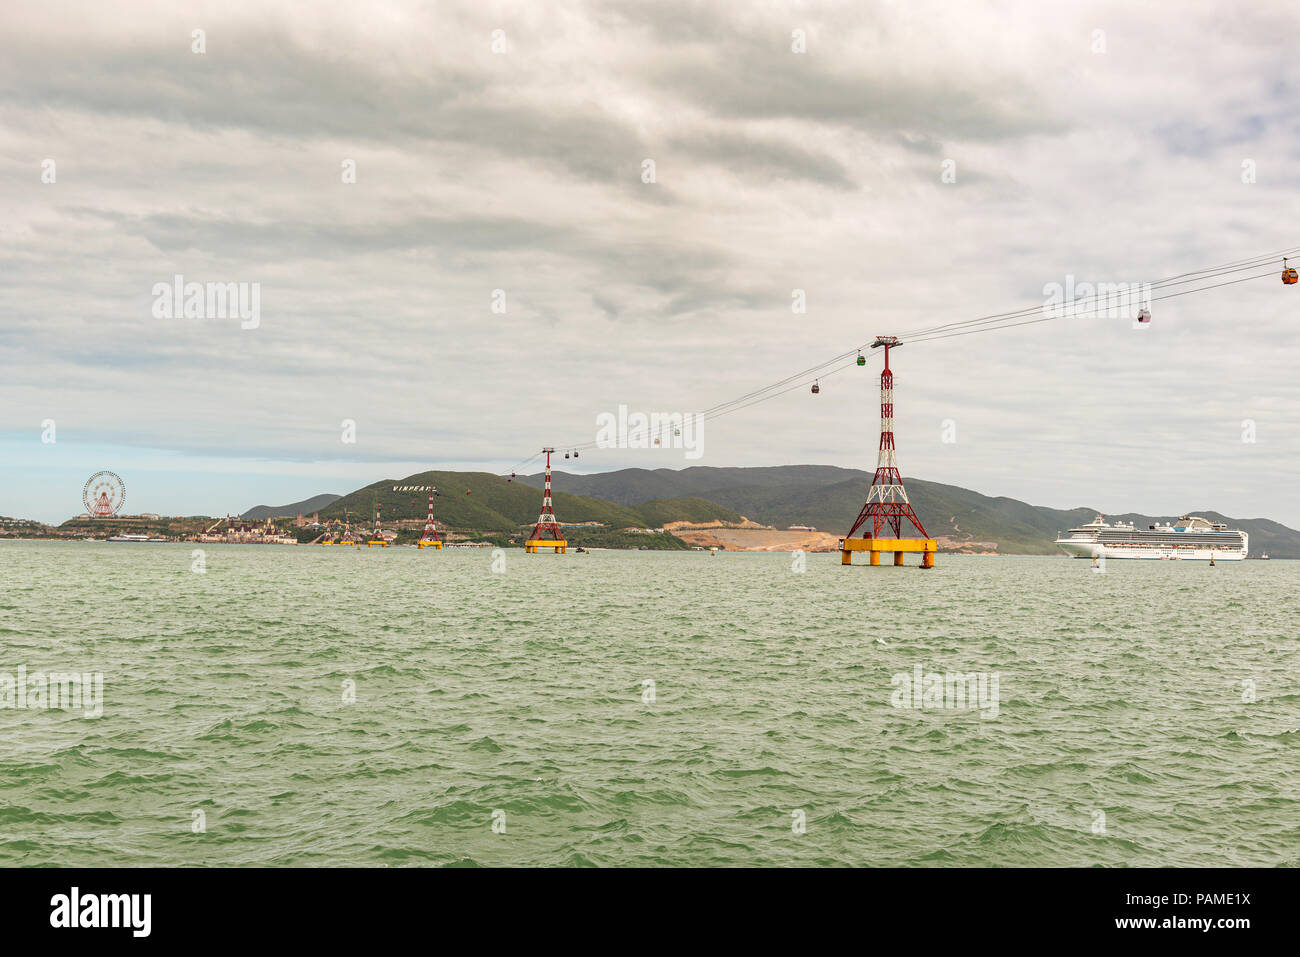 Cable car is running over the sea to Vinpearl Amusement Park on Hon Tre Island, Nha Trang, Vietnam. - Stock Image